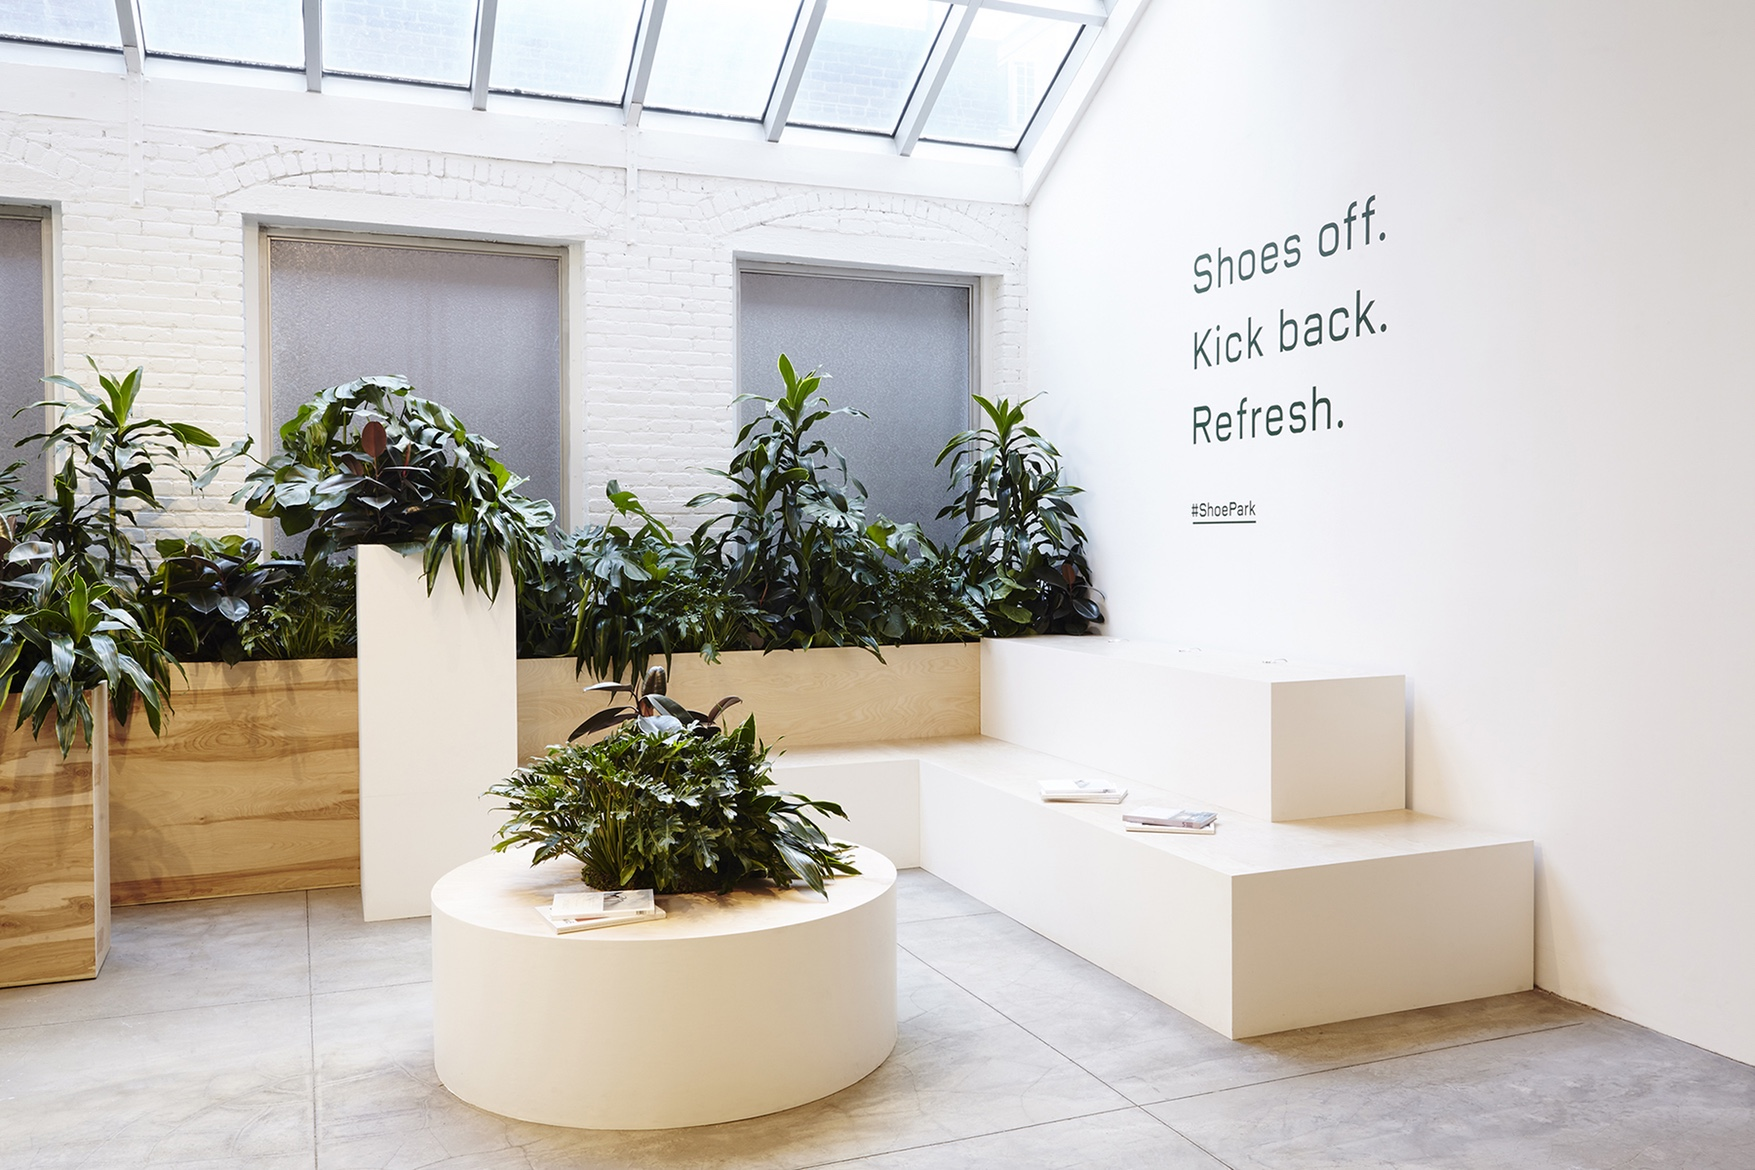 Everlane's Shoe Park pop-up in SoHo was reportedly inspired by the flora of London's Barbican Centre.